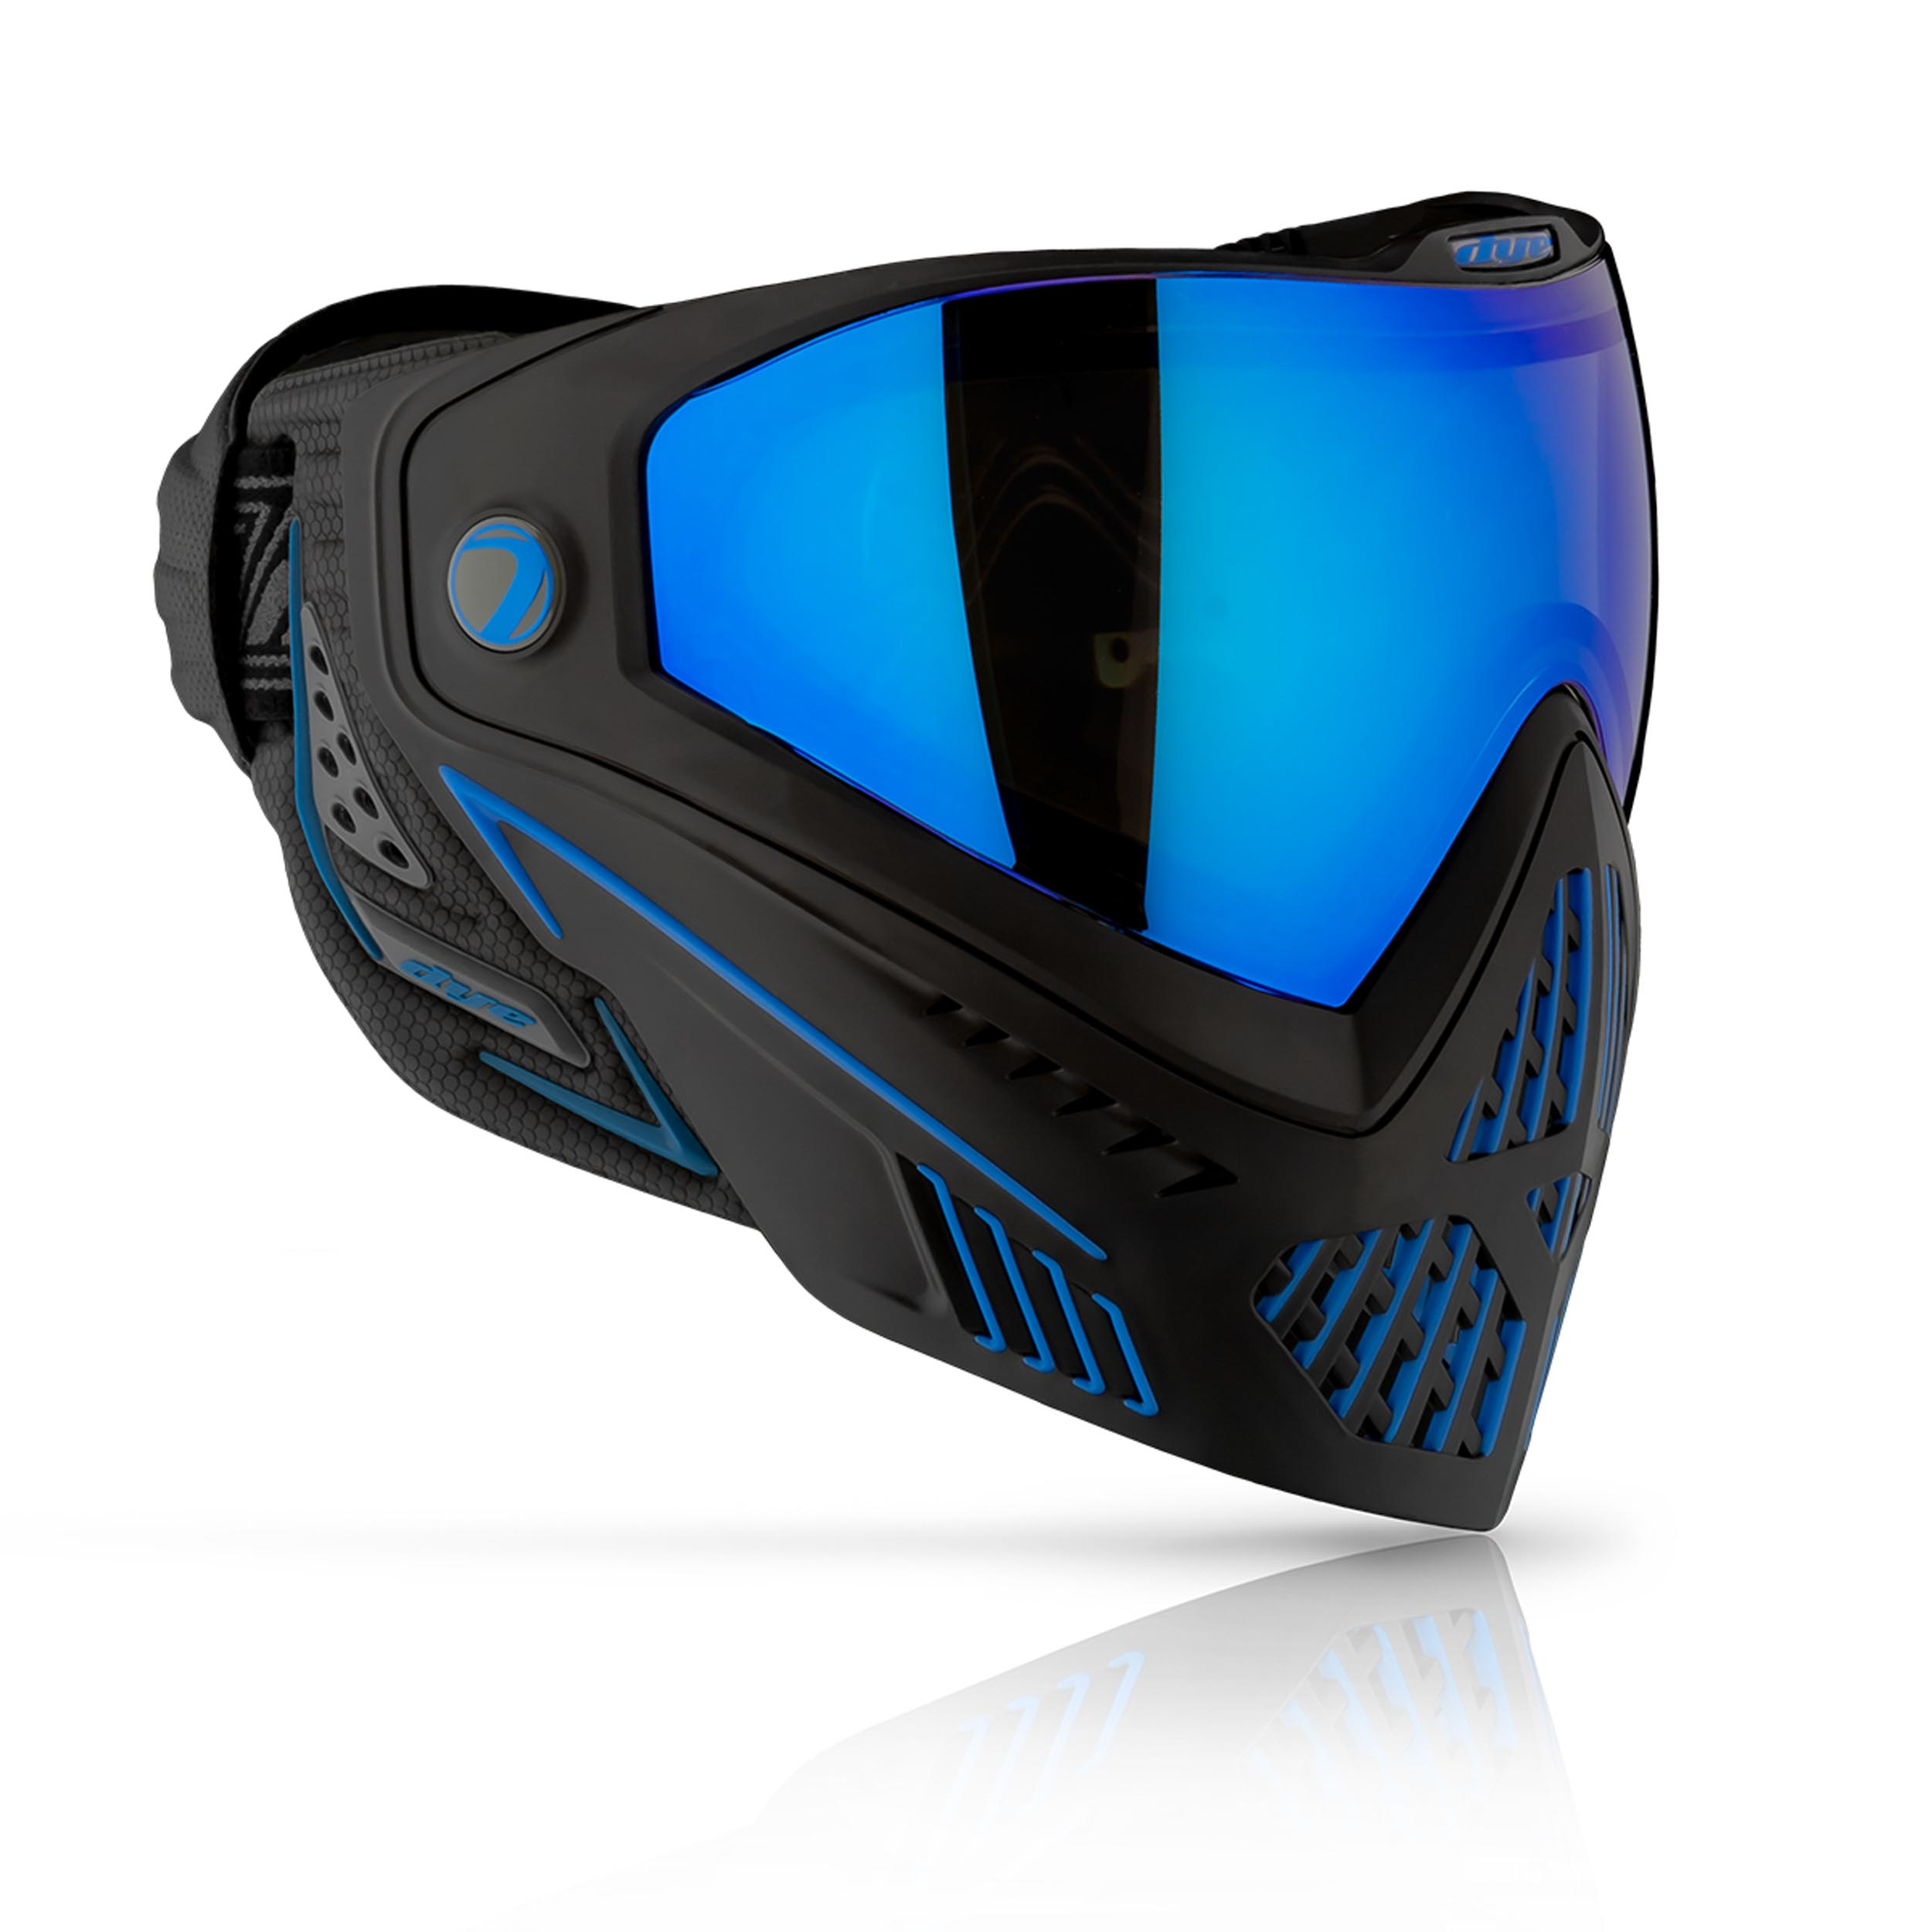 MAS473 Dye I5 thermal goggle Onyx Black Gold 2.0 - MAS473